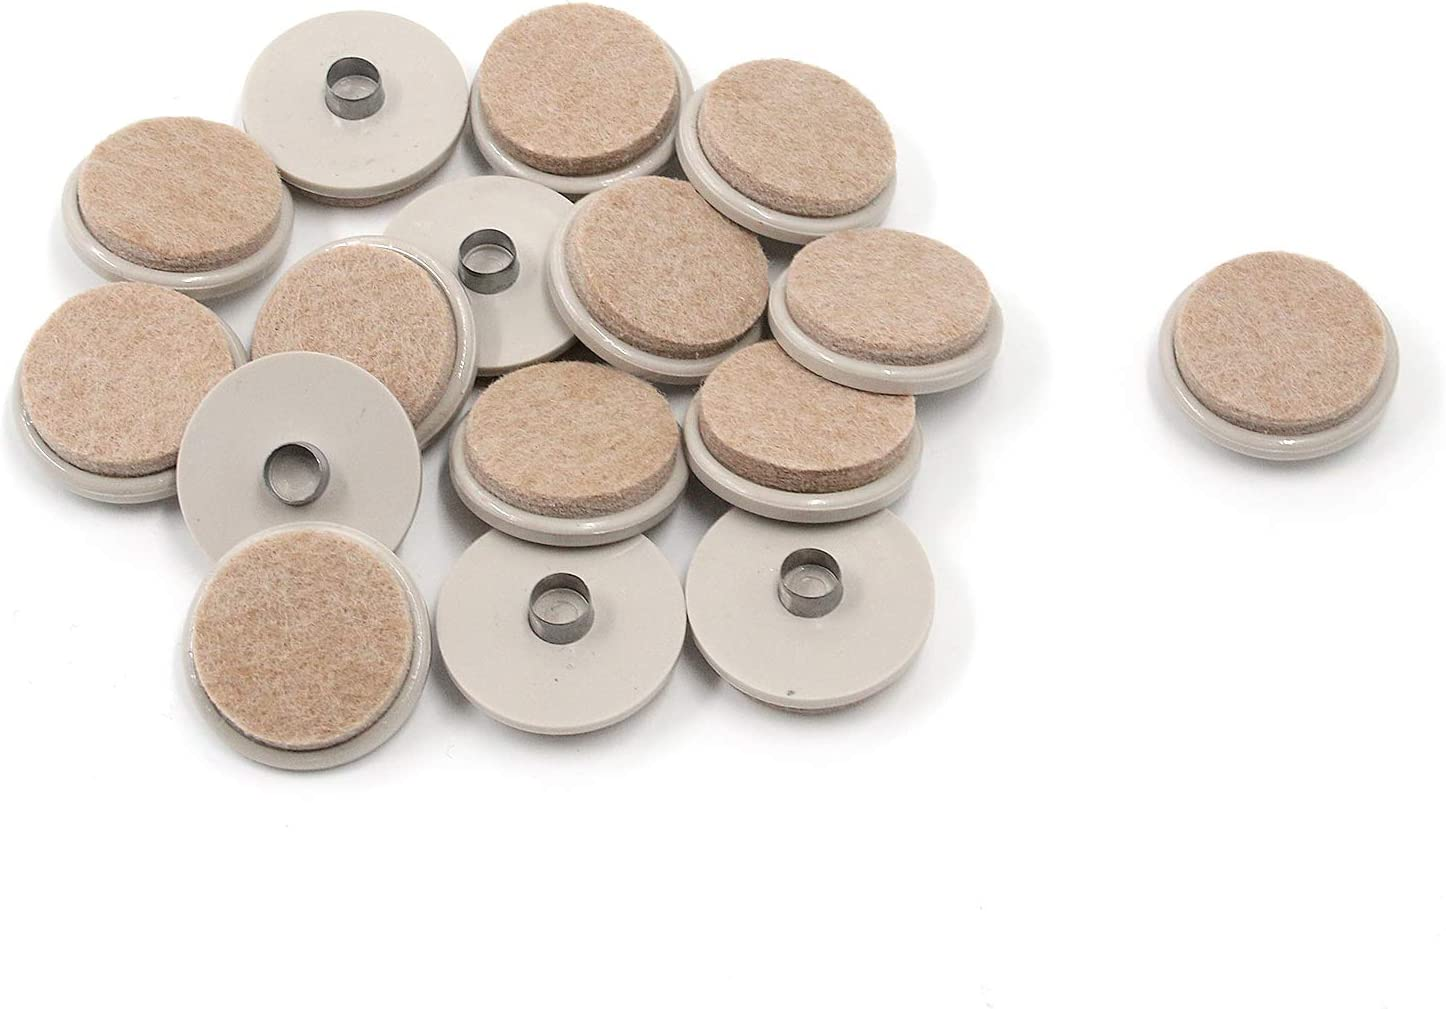 Antrader 16Pcs Nail-on Heavy Duty Felt Pads for Wood Furniture Leg, Prevent Floor Surfaces from Scratches, 1-1/2 Inch Round Furniture Protectors, Linen